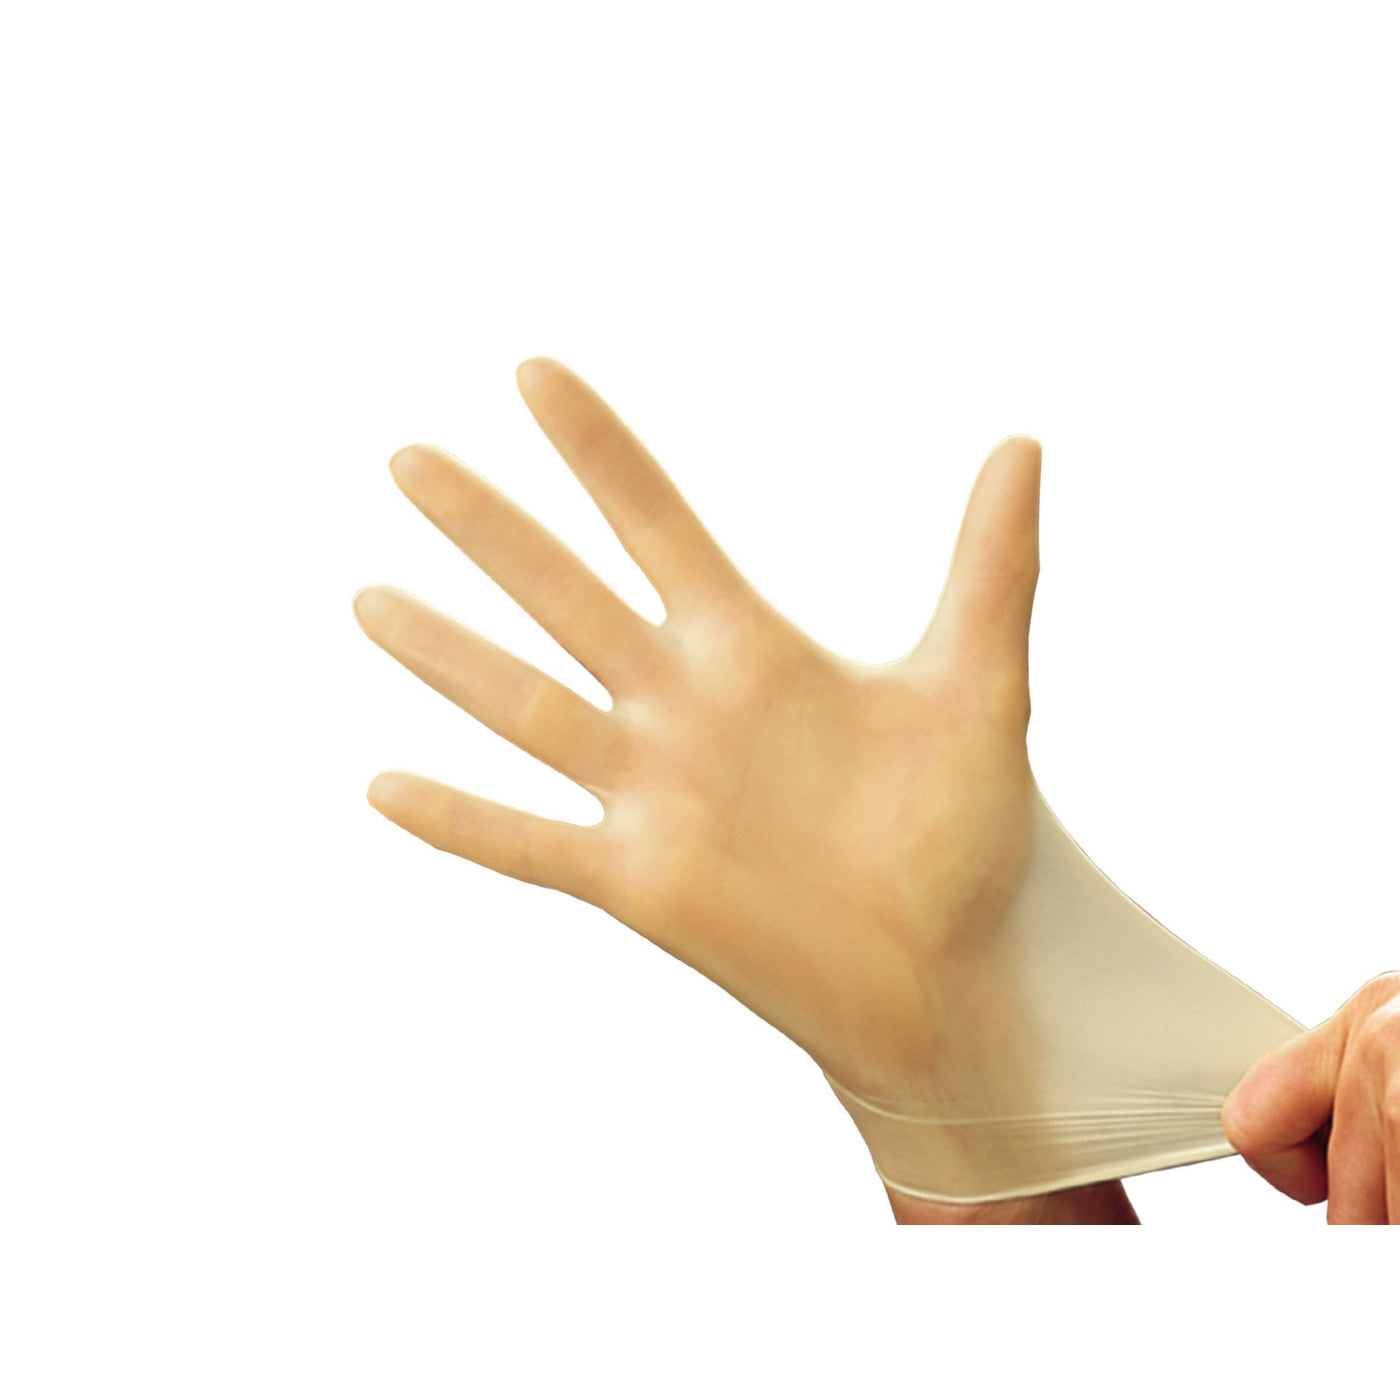 Latex Gloves-Laboratory Accessory-Mortech Manufacturing Company Inc. Quality Stainless Steel Autopsy, Morgue, Funeral Home, Necropsy, Veterinary / Anatomy, Dissection Equipment and Accessories